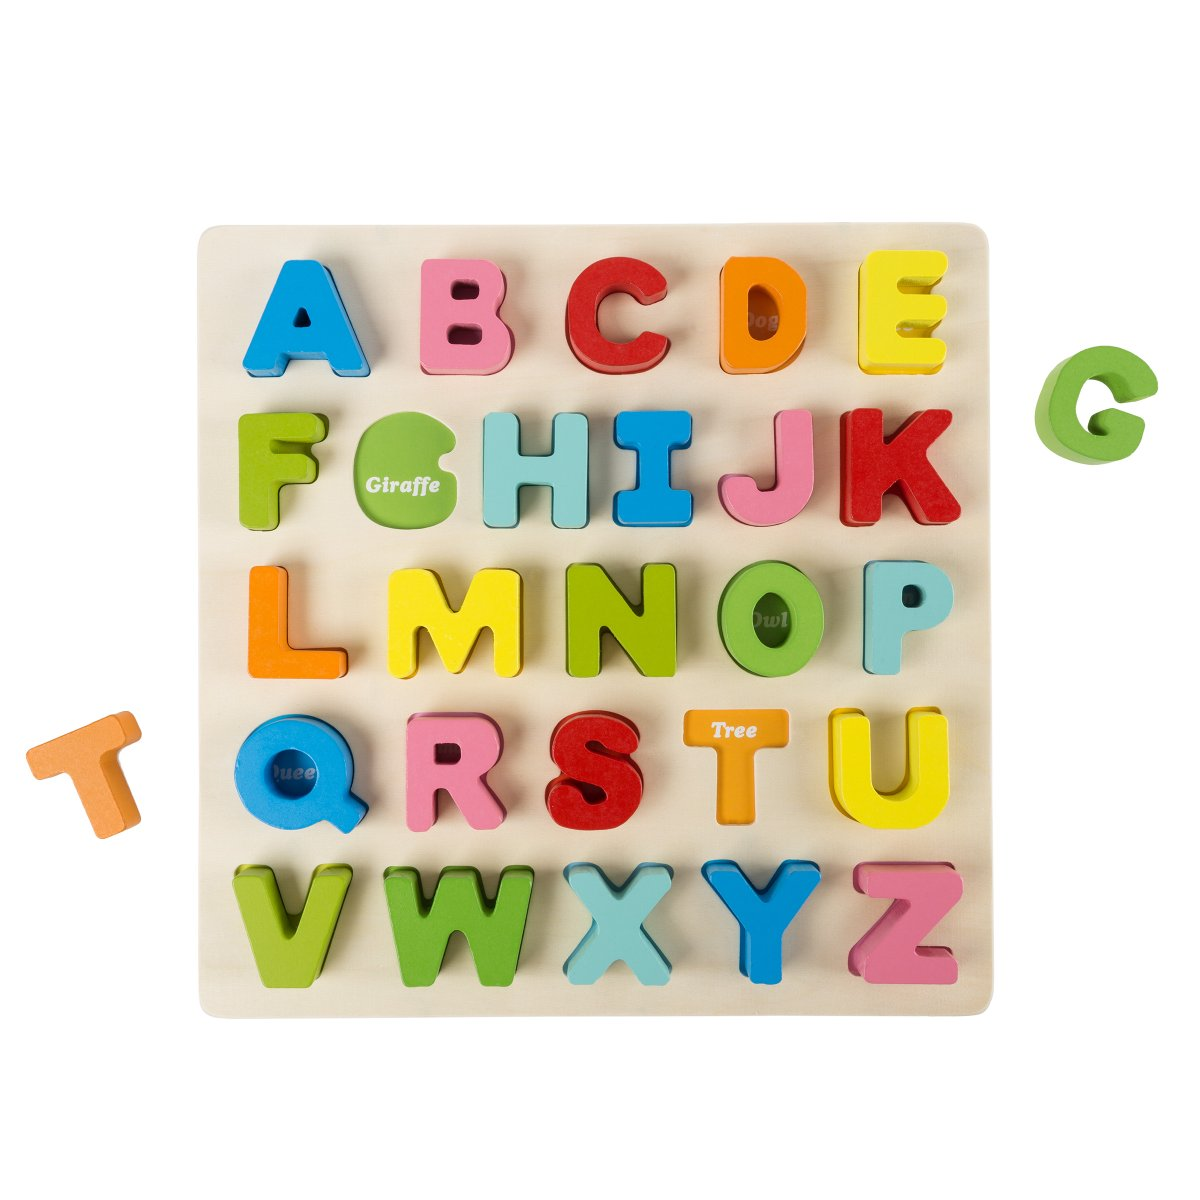 52% Off!!  Wooden Alphabet Puzzle Board with Colorful Wood Letters  https://goto.walmart.com/c/1952026/565706/9383?veh=aff&sourceid=imp_000011112222333344&u=https%3A%2F%2Fwww.walmart.com%2Fip%2FWooden-Alphabet-Puzzle-Board-with-Colorful-Wood-Letters-Educational-Toy-by-Hey-Play%2F346666741…  #BwcDeals #dailydeals #DealsAndSteals #TEACHerspic.twitter.com/ZtiqRoDOtn